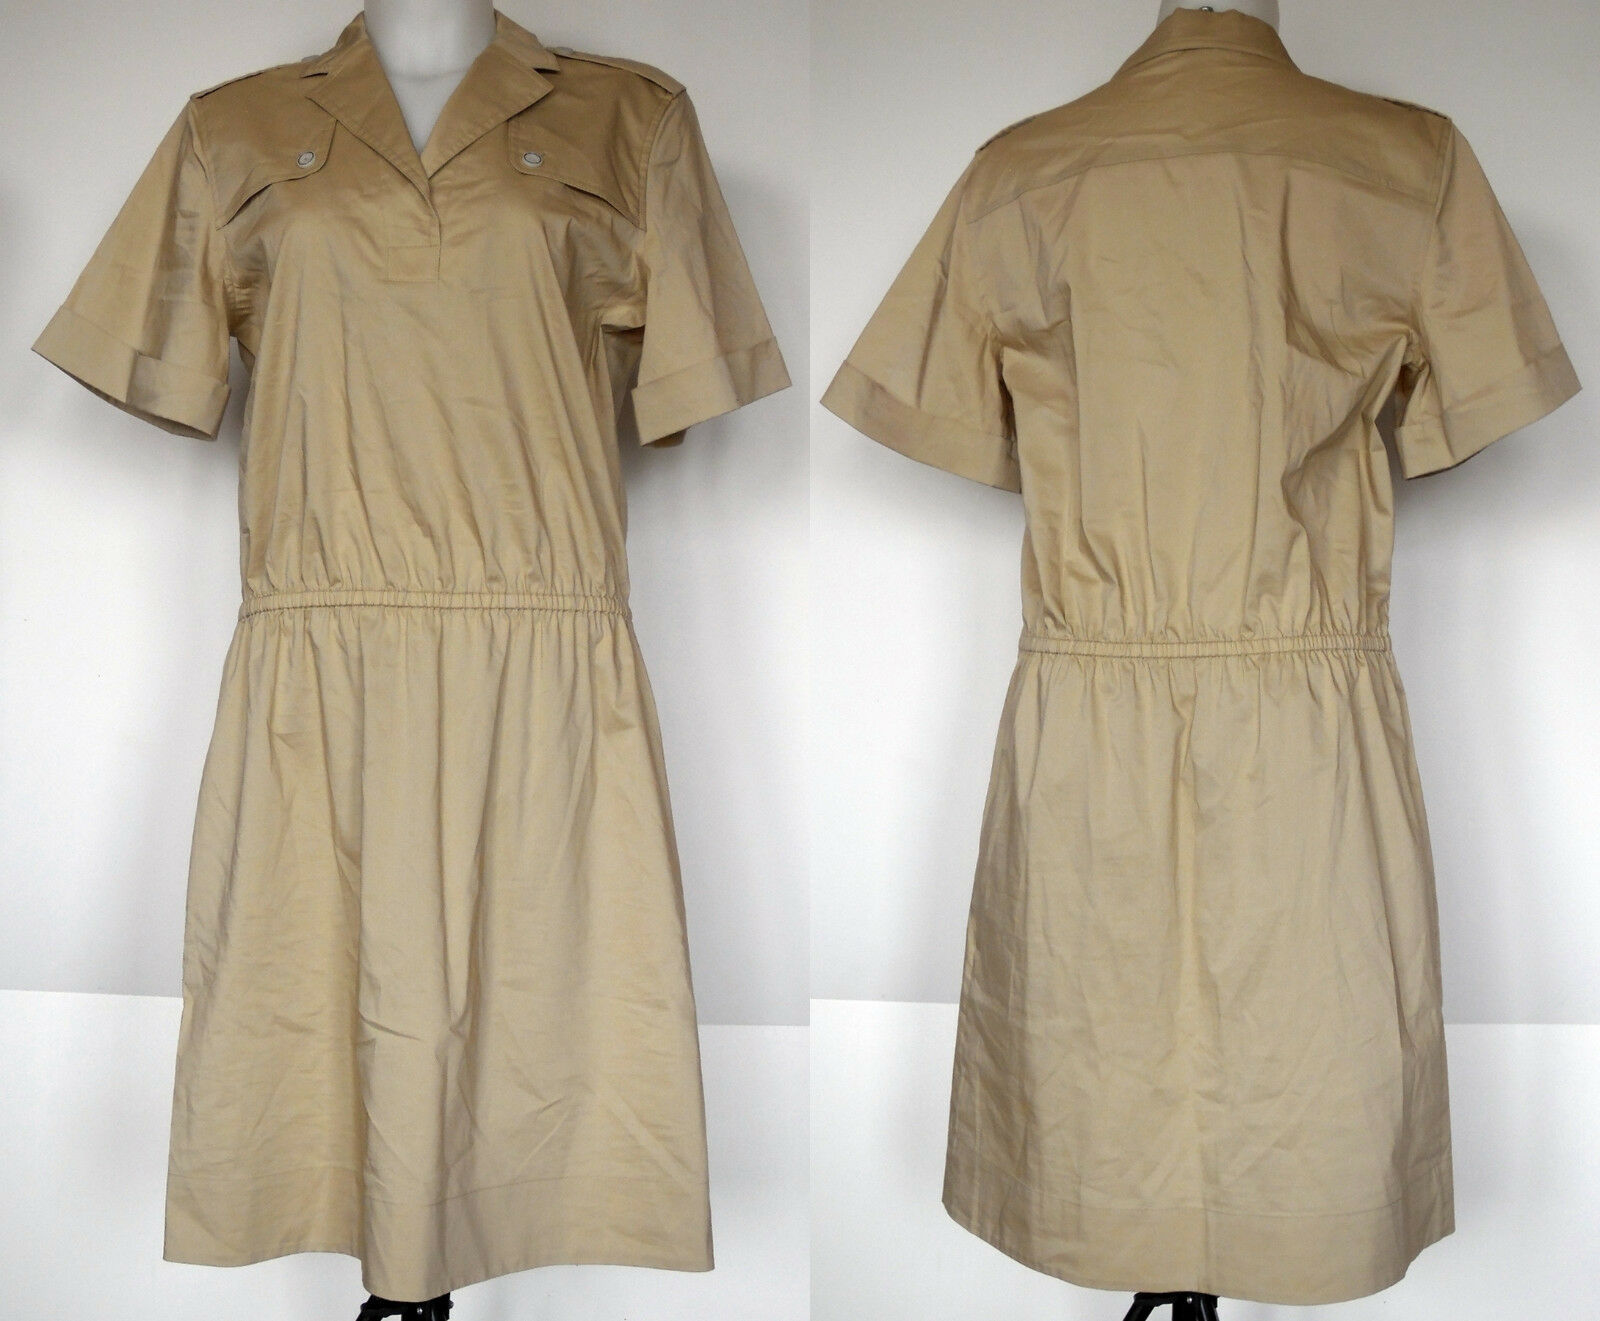 Brooks Brothers Tan Stretch Cotton Sateen Trench Inspirot S S Shirt Dress 10